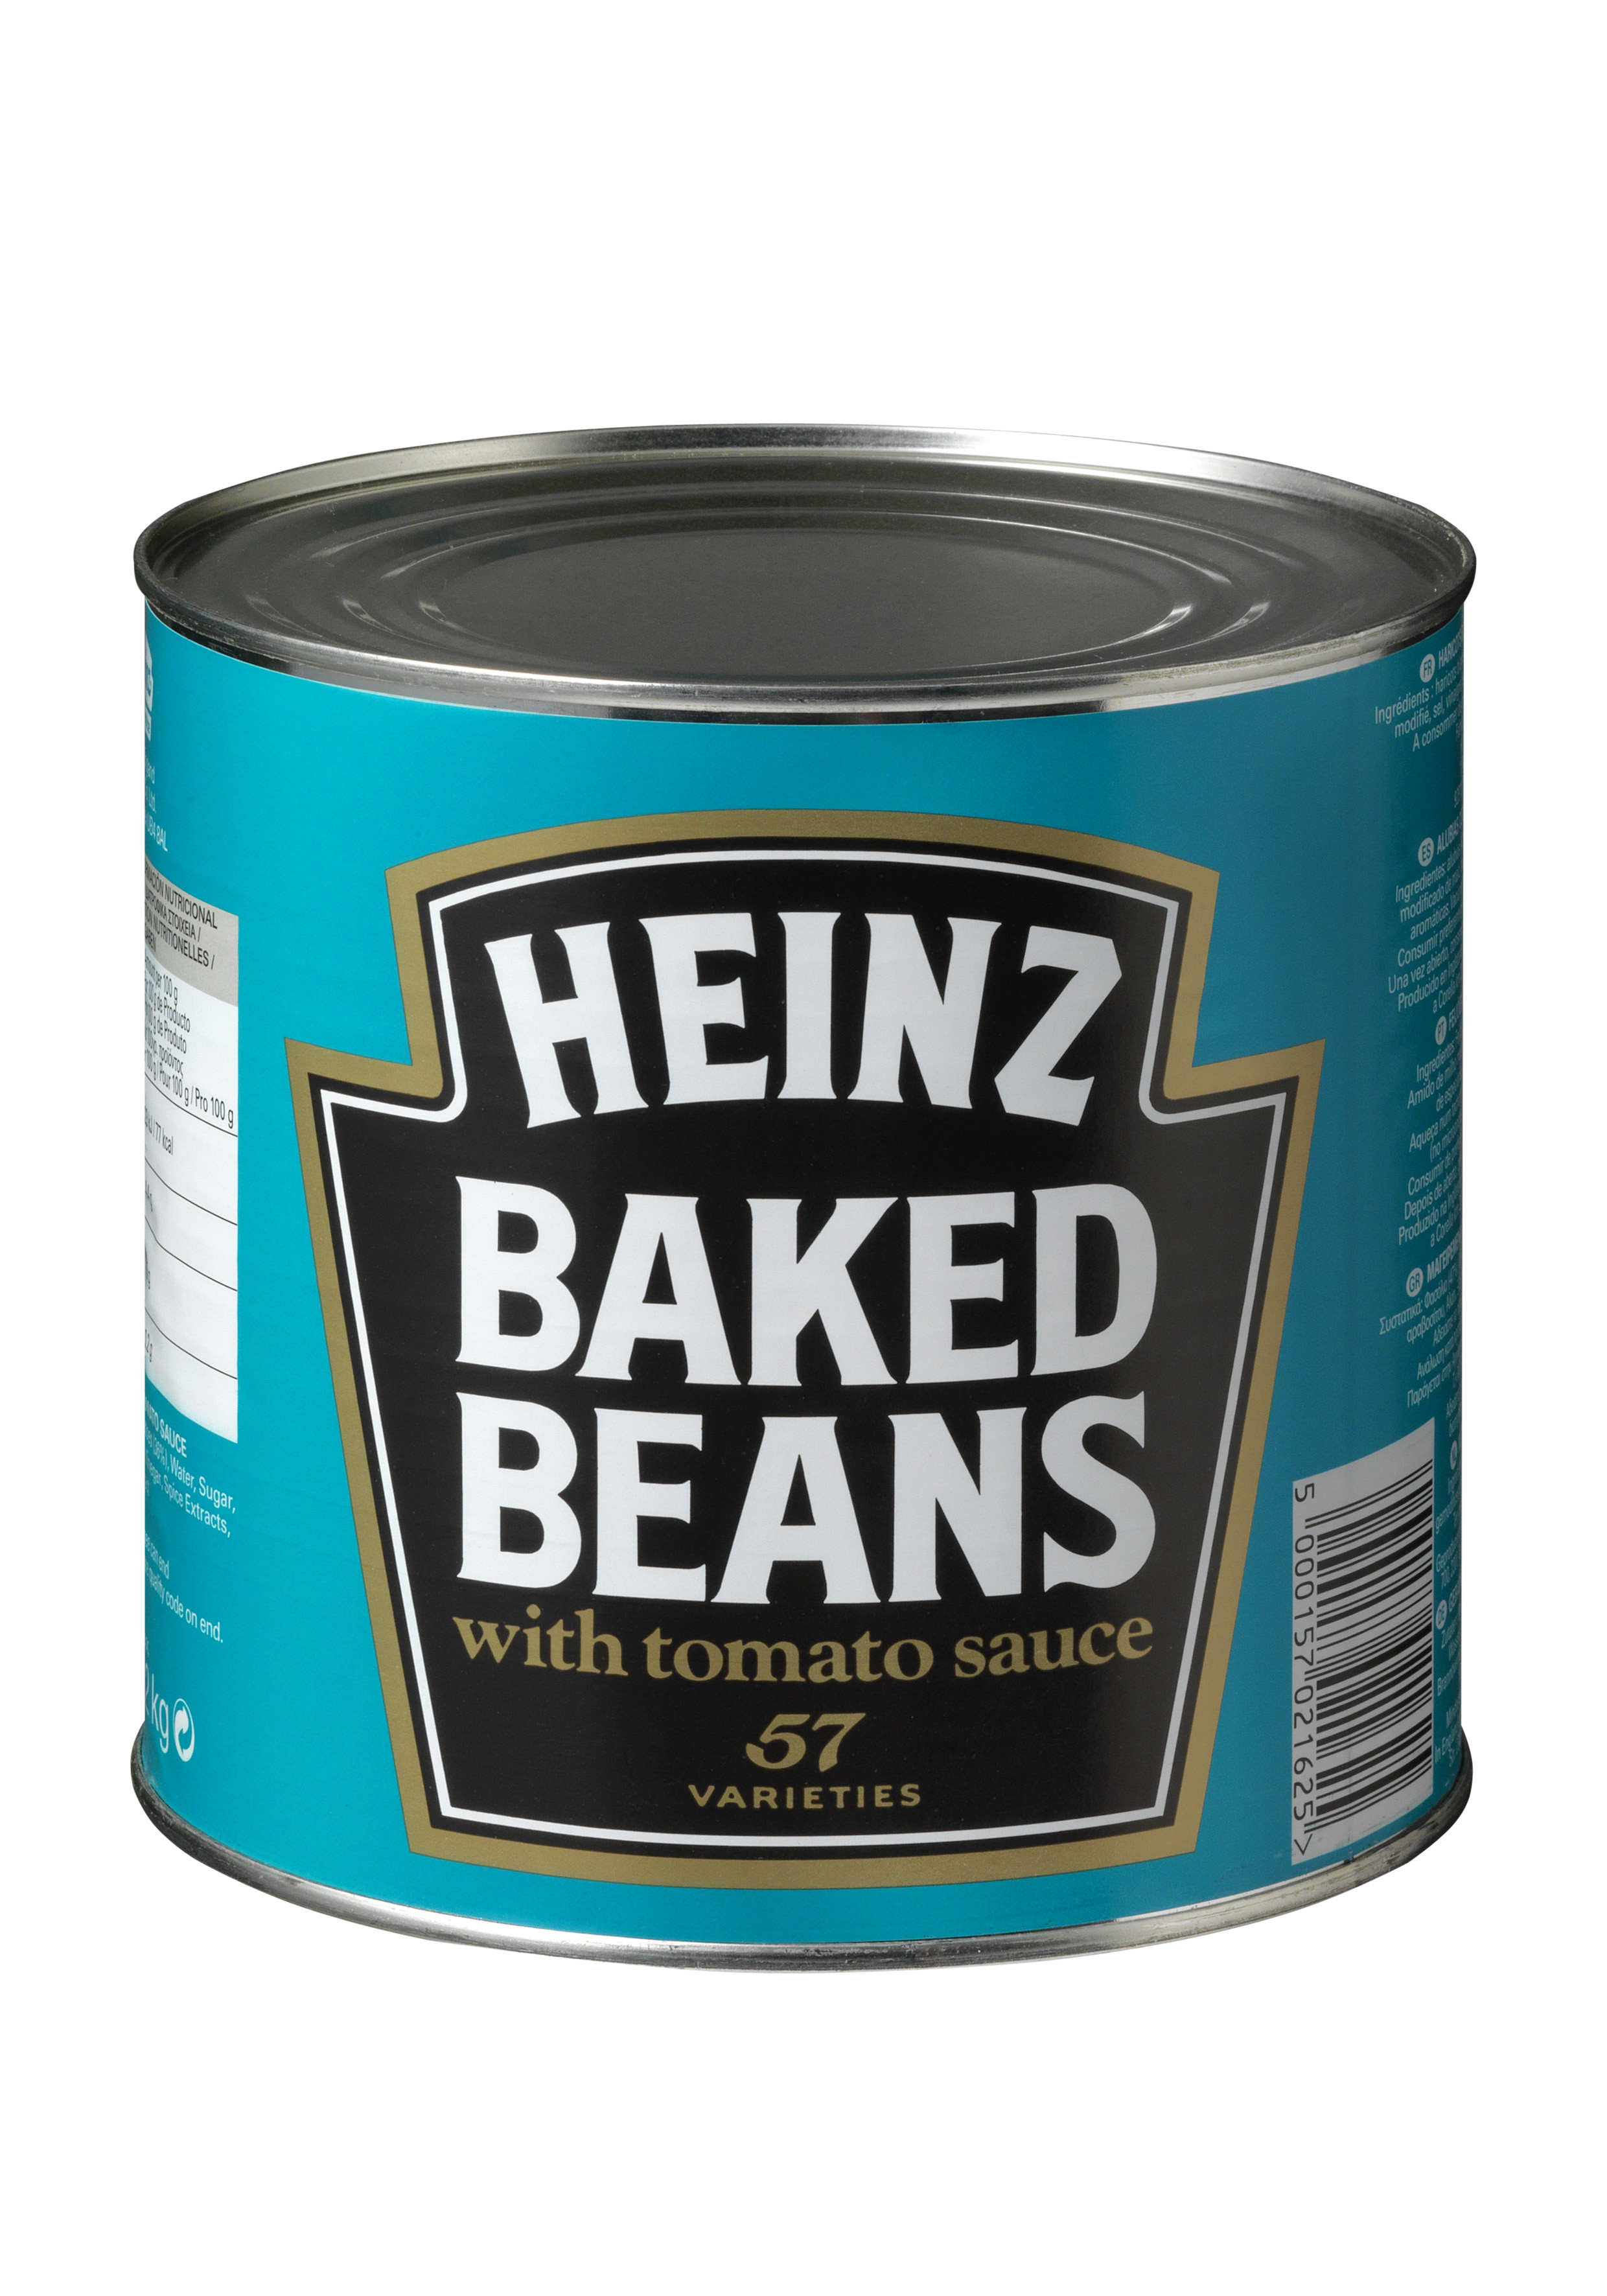 Heinz Baked Beans in Tomato Sauce 2.6kg canned